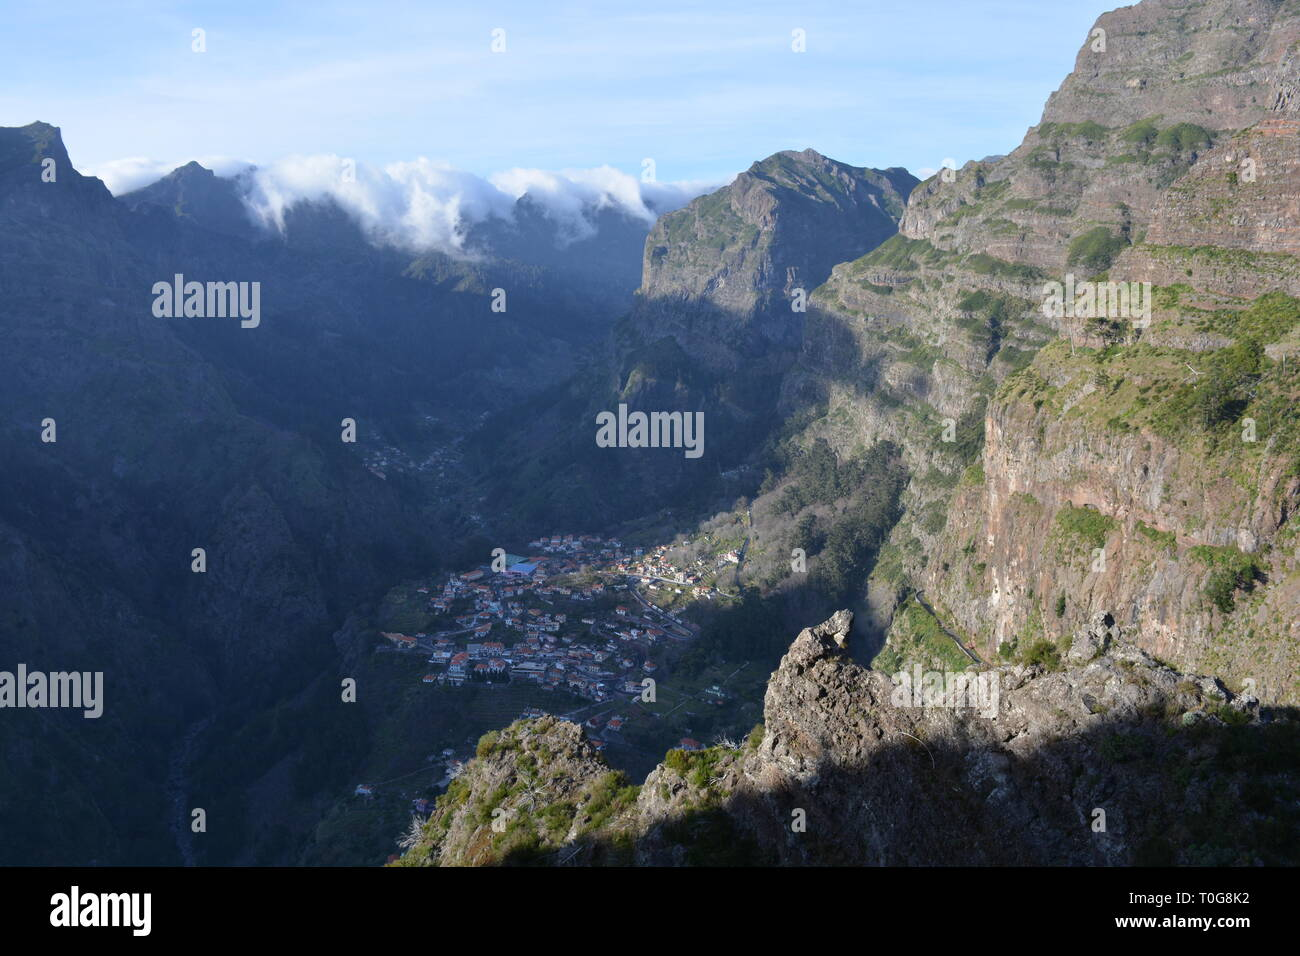 Eira do Serrado looking to Curral das Freiras, a small town at the bottom of a valley surrounded by steep, cloud capped mountains, Madeira, Portugal - Stock Image